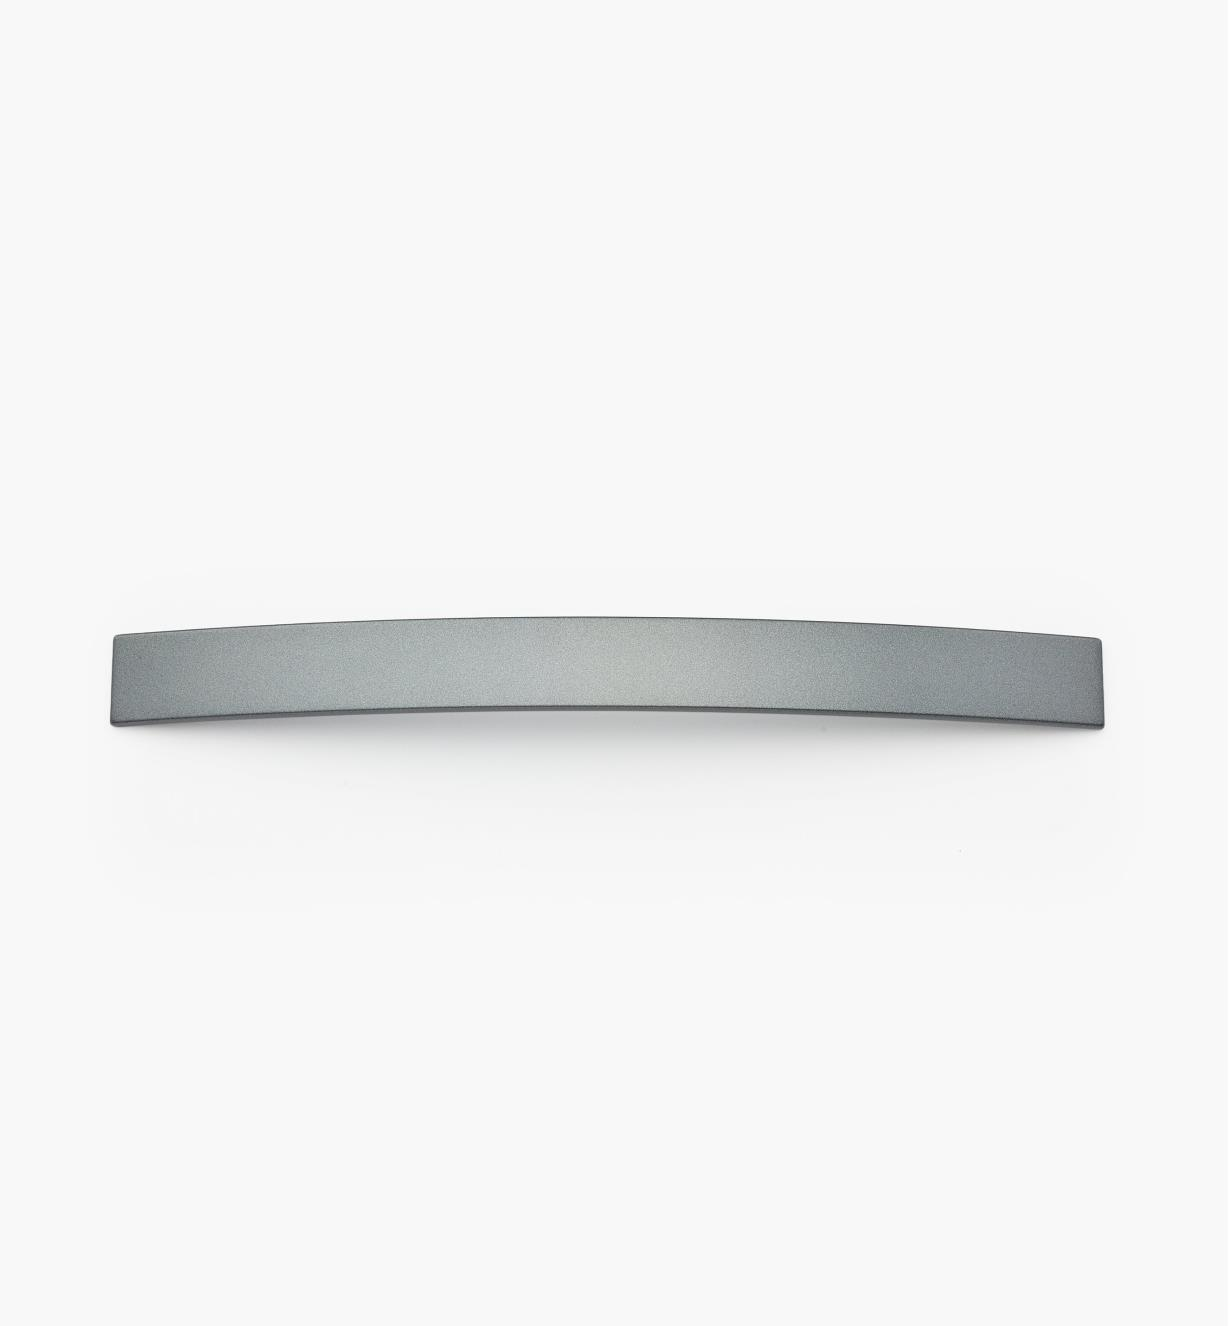 02W1582 - 288/322mm x 30mm Graphite Archway Handle